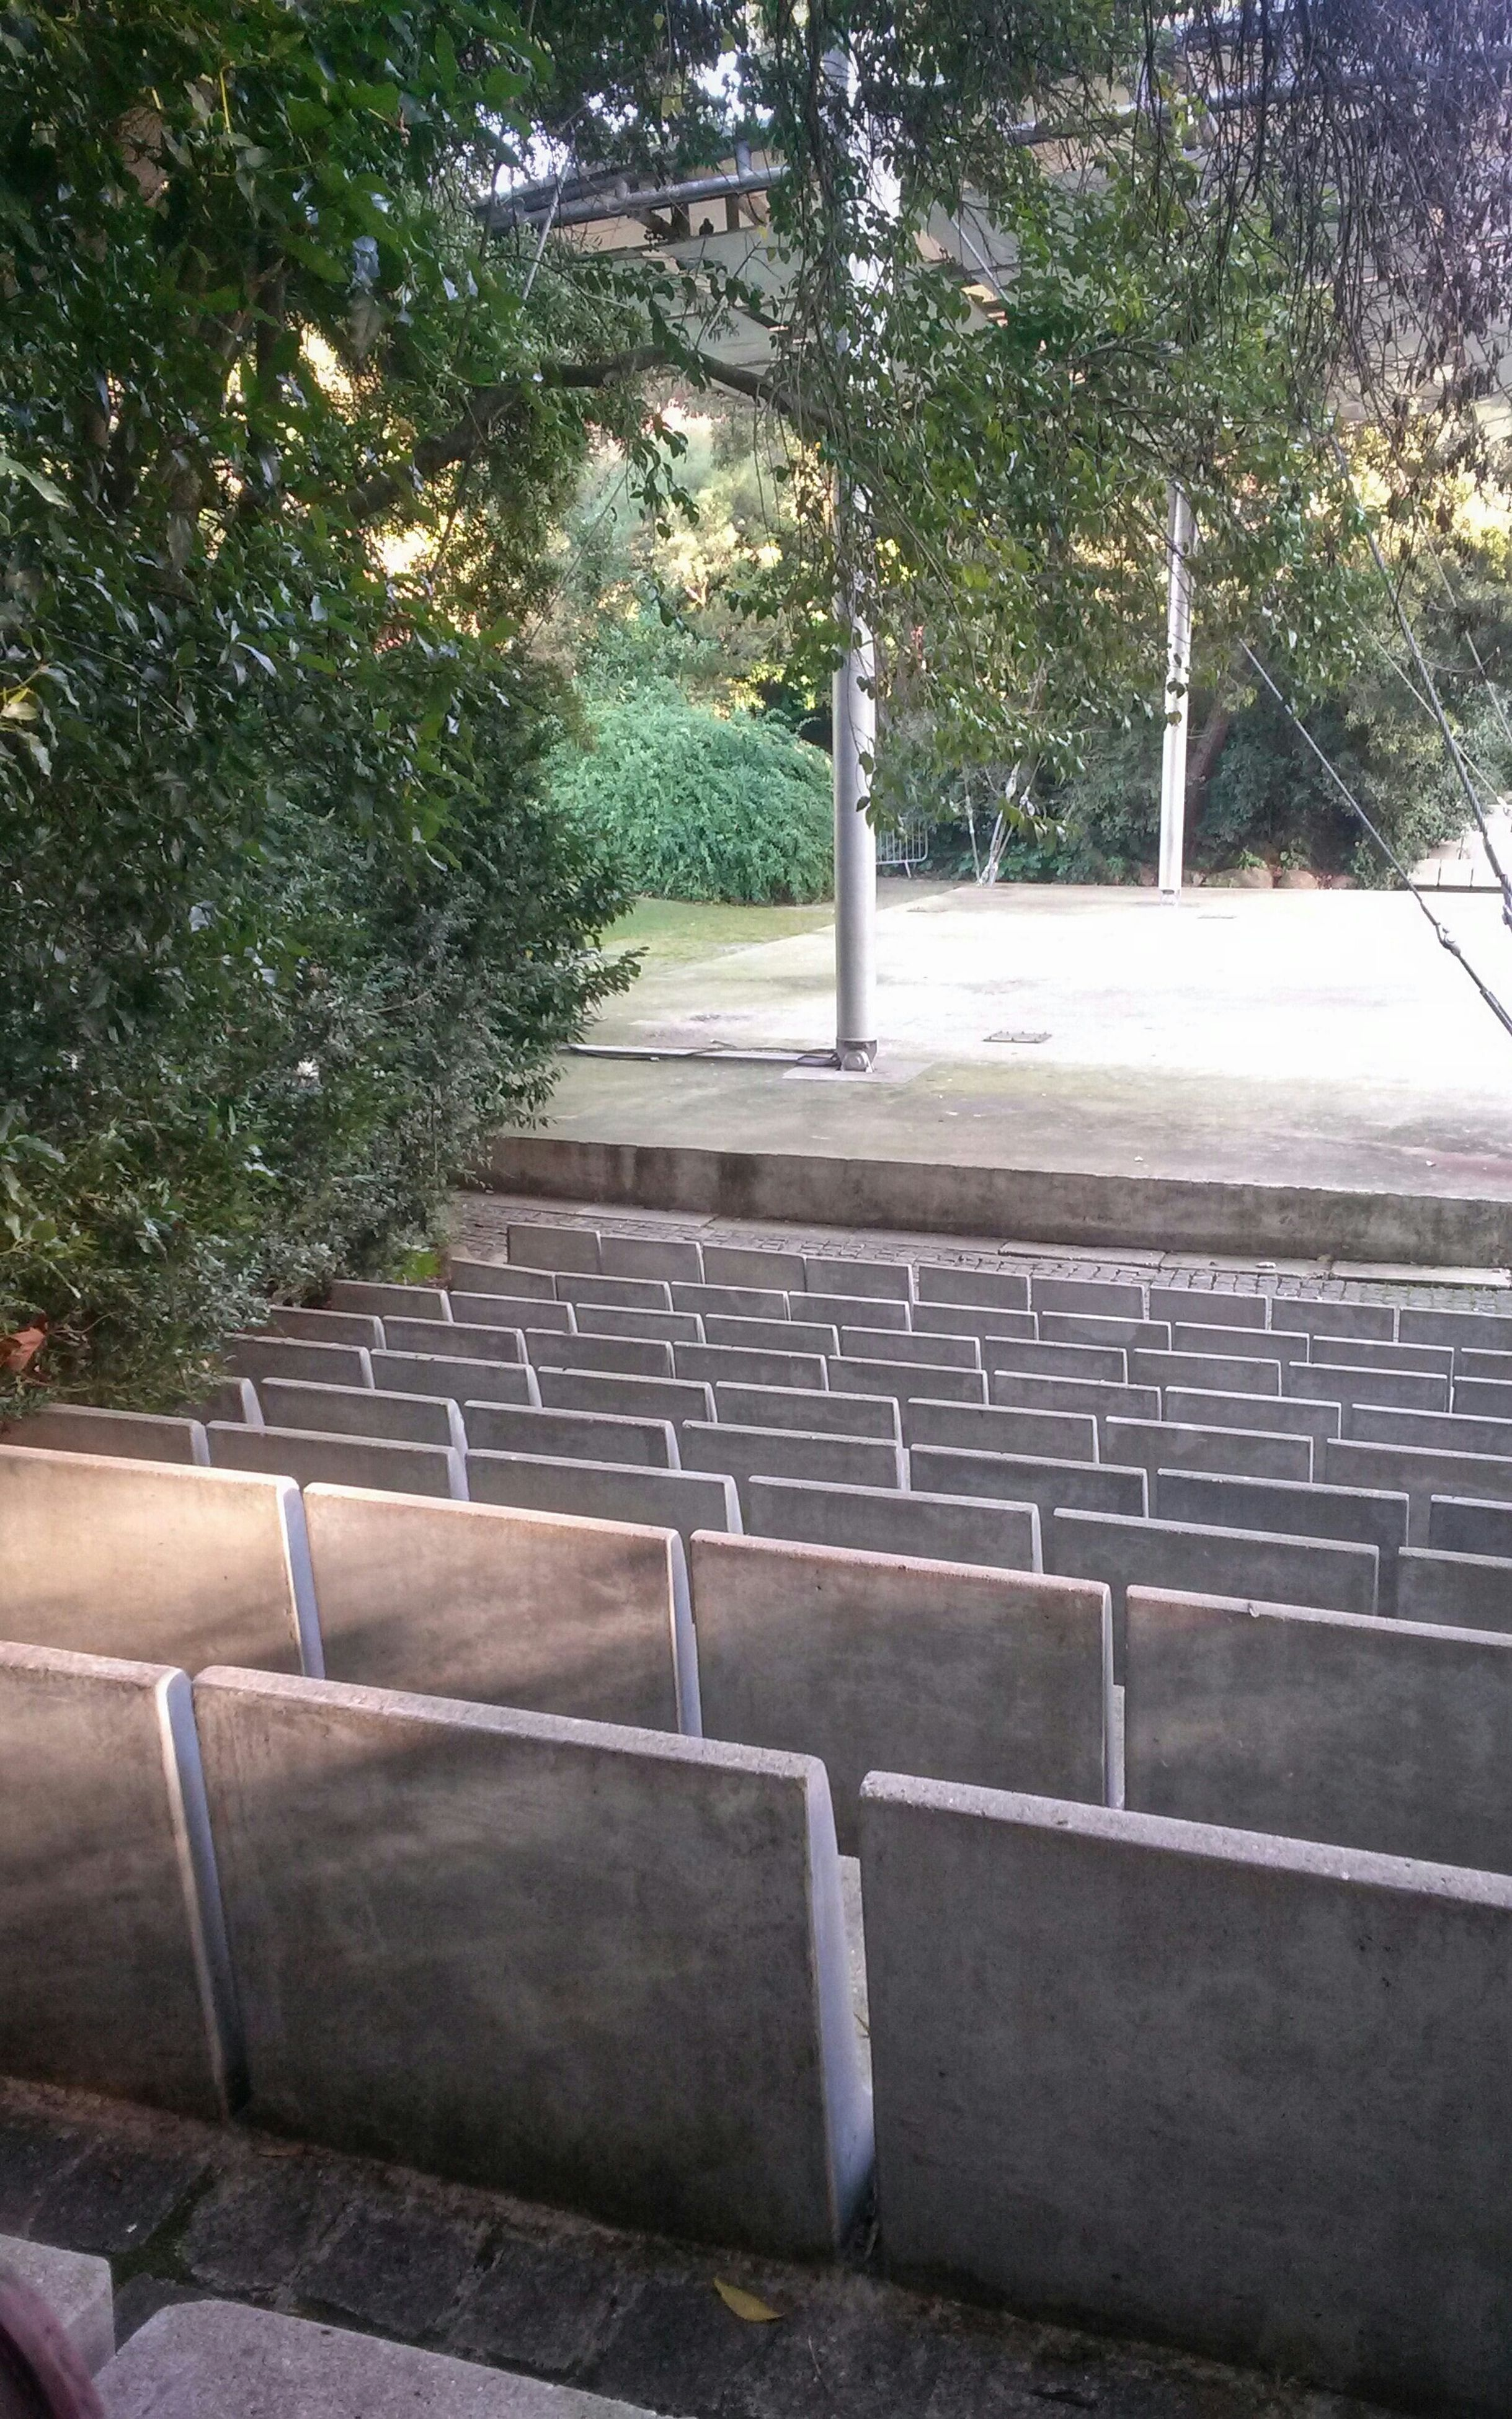 tree, steps, railing, the way forward, steps and staircases, growth, built structure, staircase, sunlight, empty, plant, footpath, architecture, park - man made space, bench, absence, day, no people, outdoors, nature